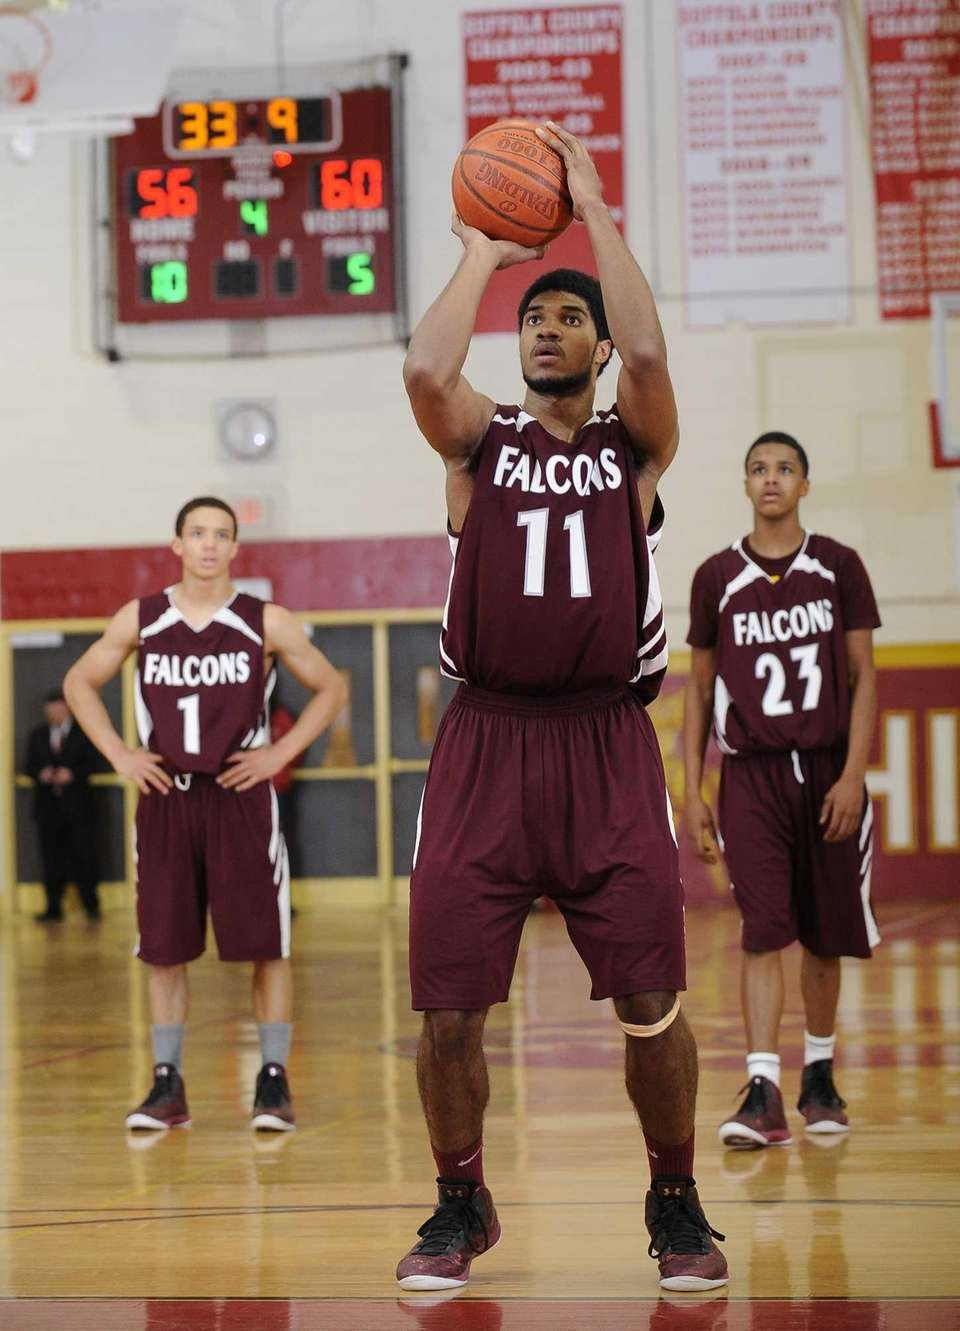 Deer Park's Carrel Joseph shoots a free throw